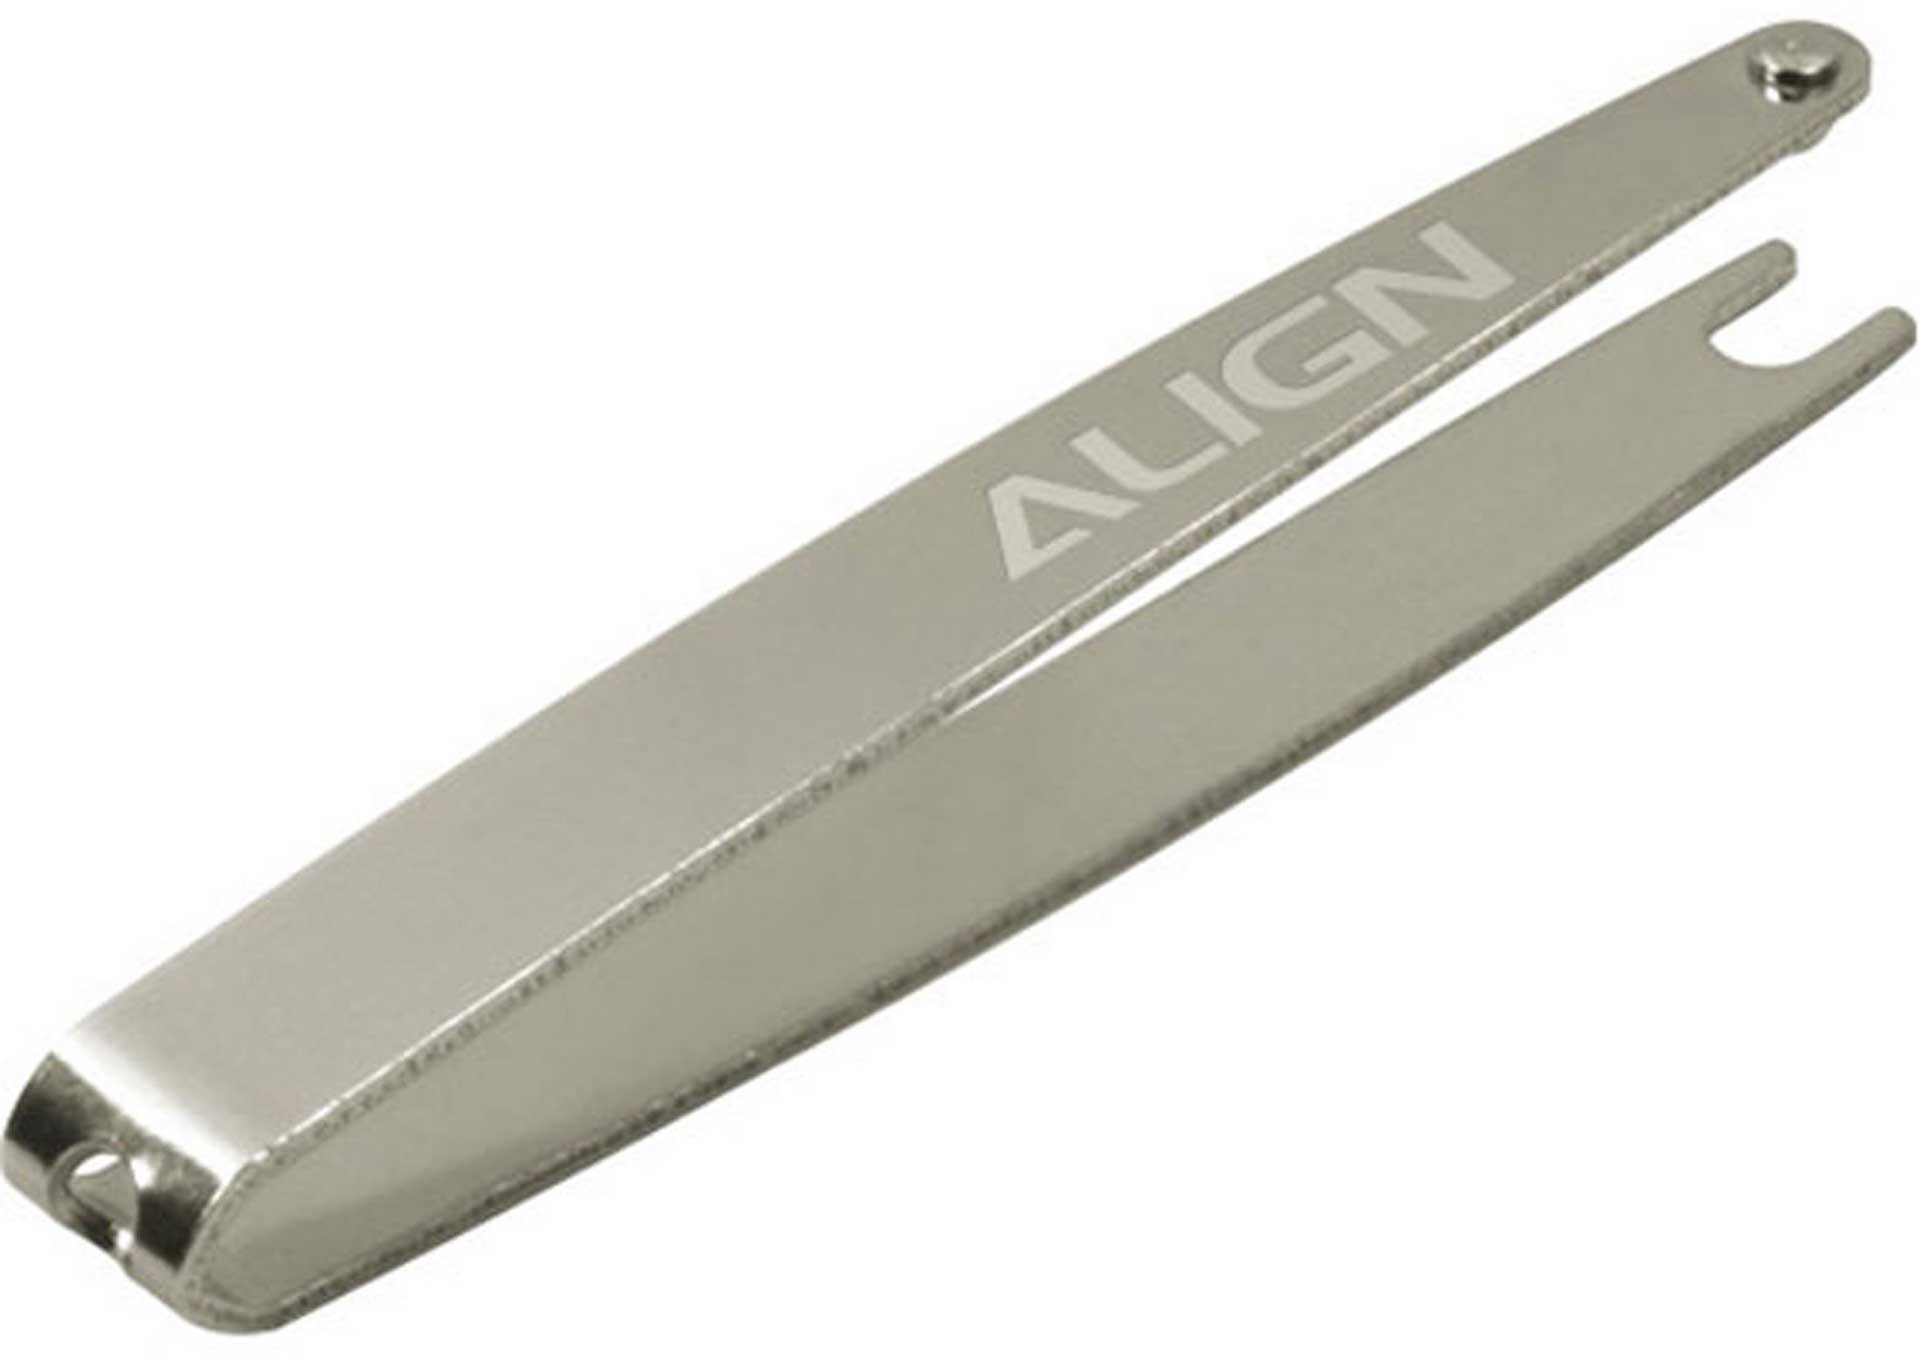 ALIGN BALL BUTTON FORCEPS250